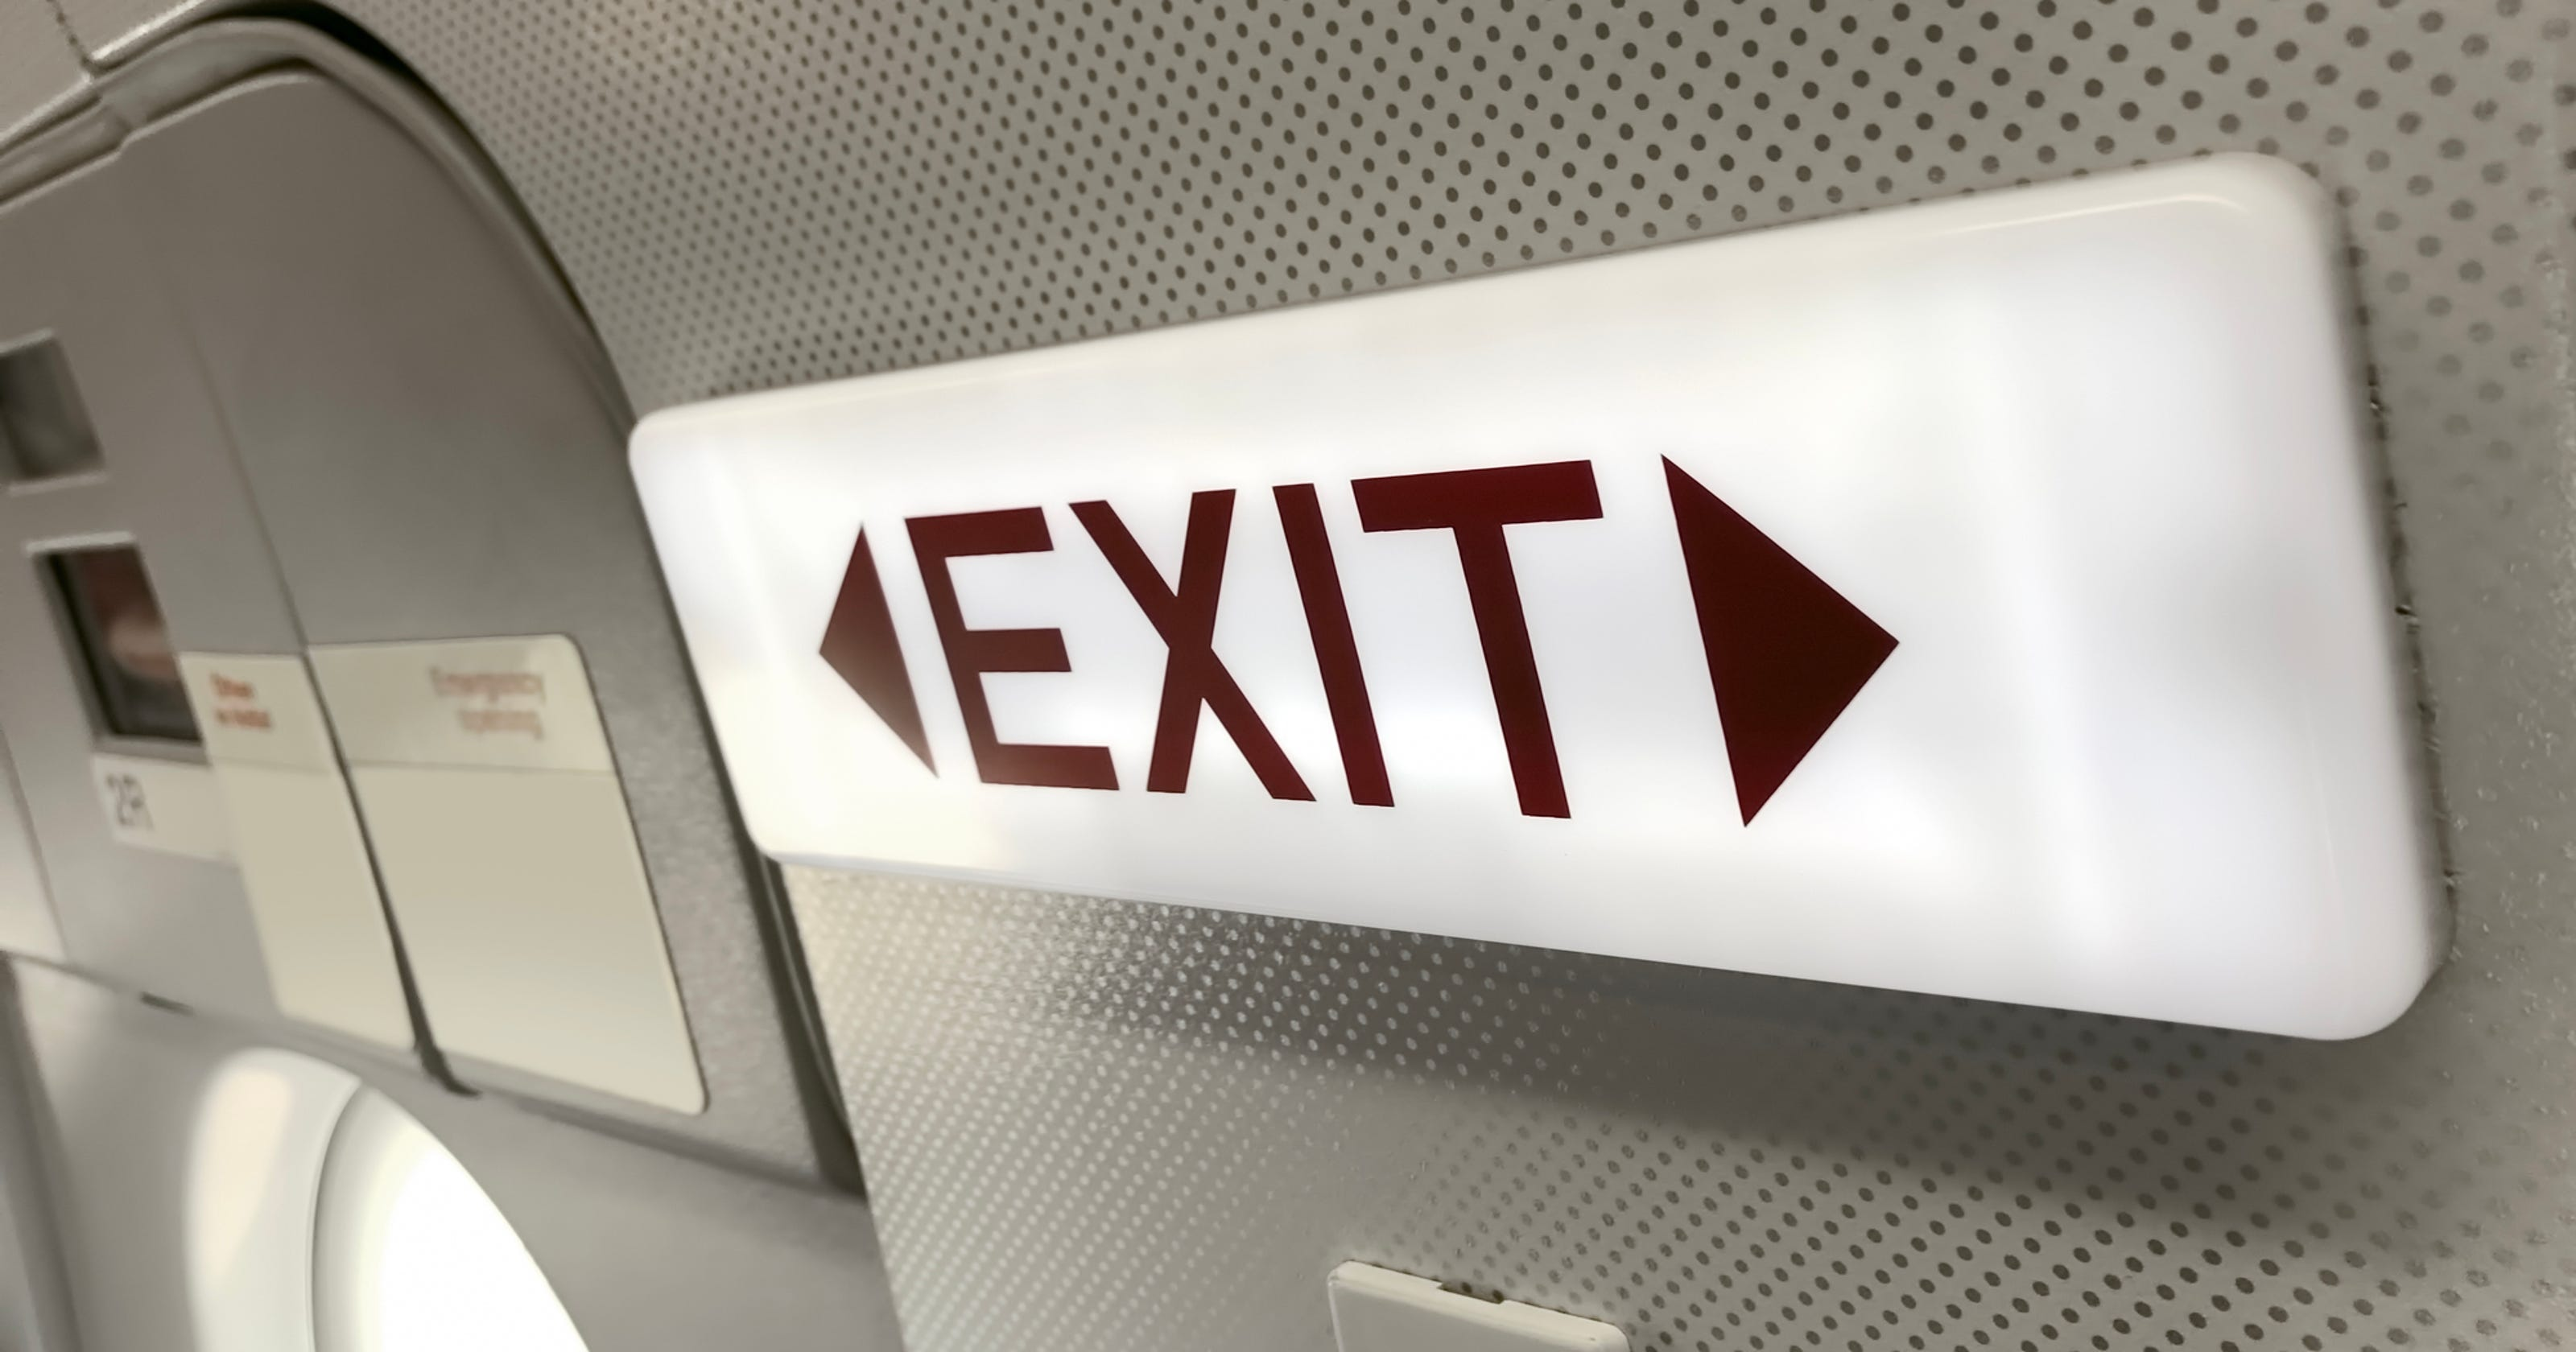 Airplane evacuation tests: Are they up to date?